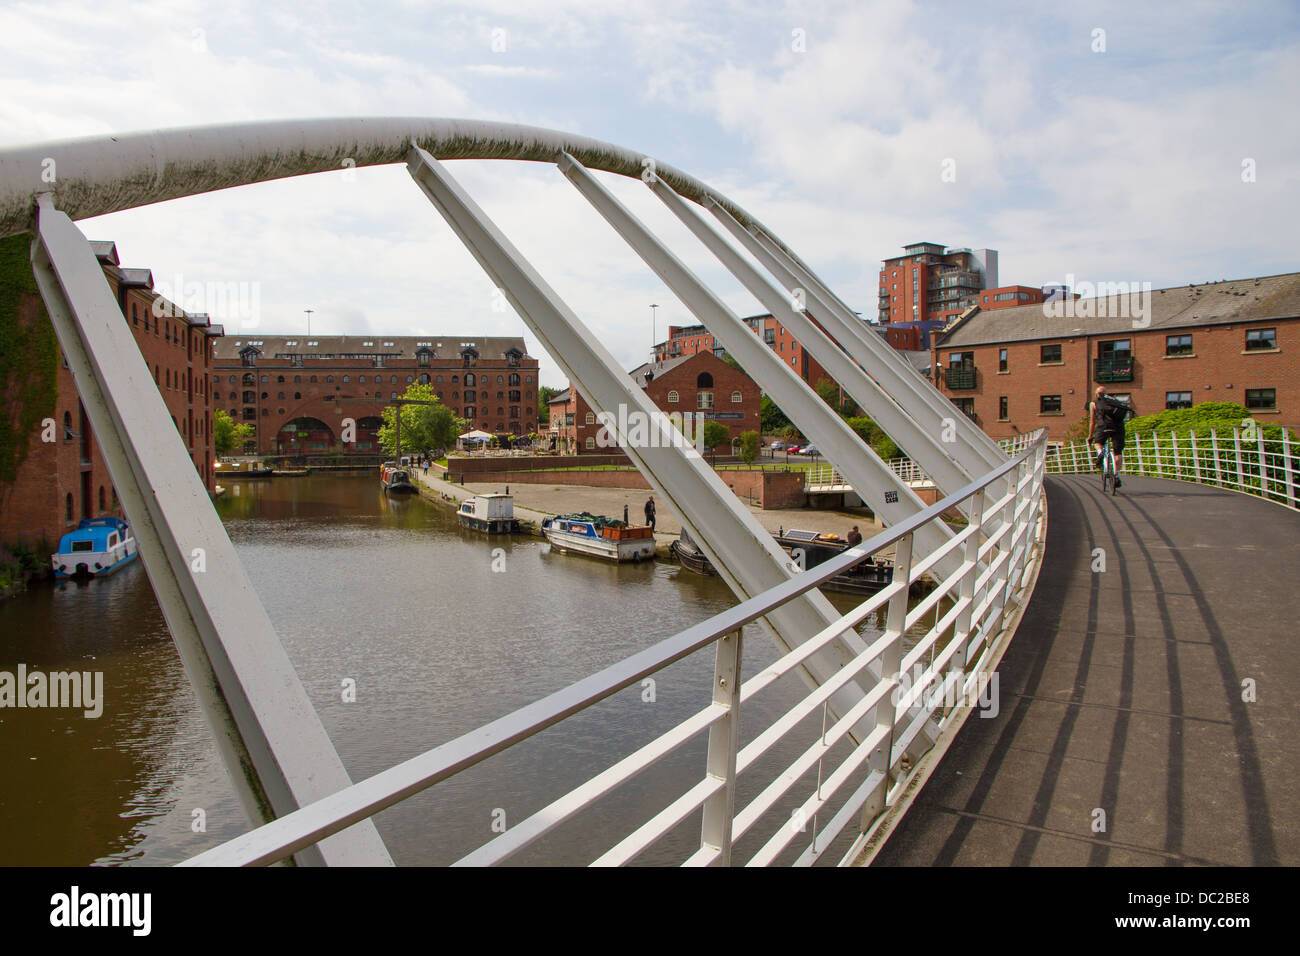 Looking from the Whitby and Bird Merchants Bridge across the Bridgewater Canal with Middle Warehouse - Stock Image